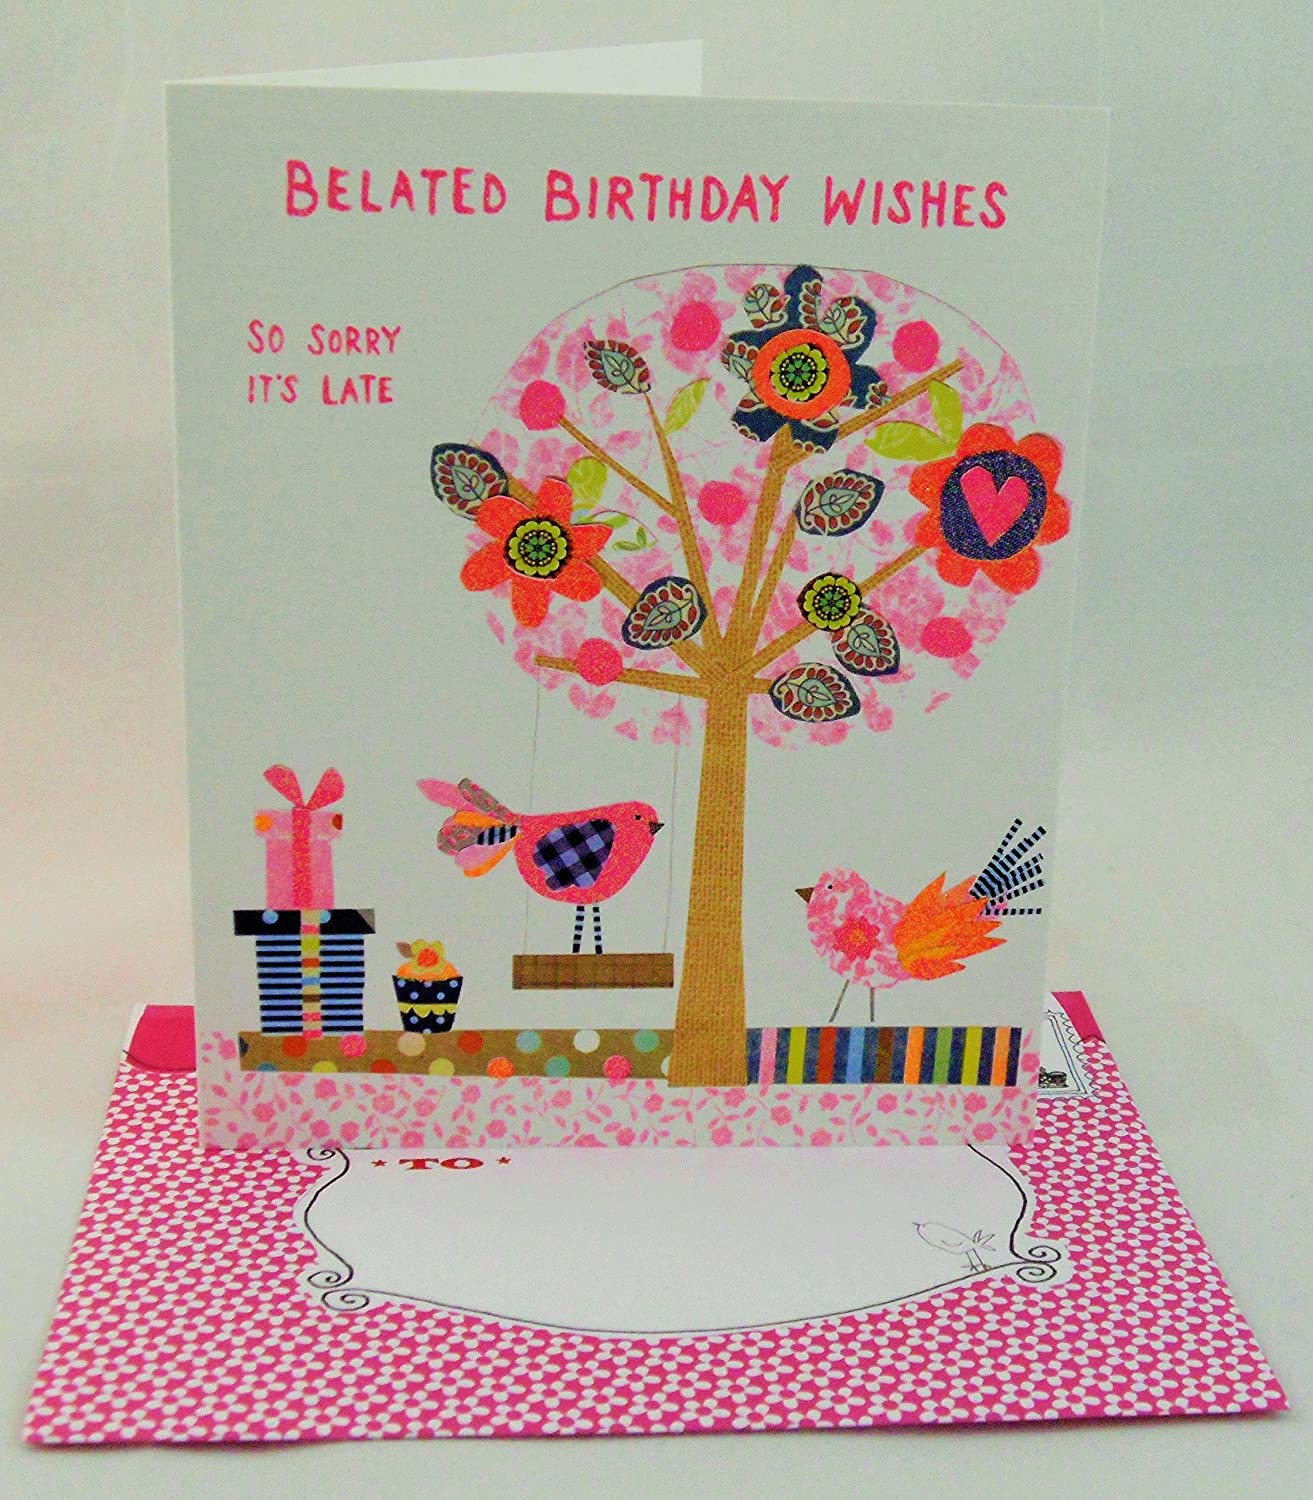 Paper Salad Belated Birthday Wishes Birds Birthday Card Amazon